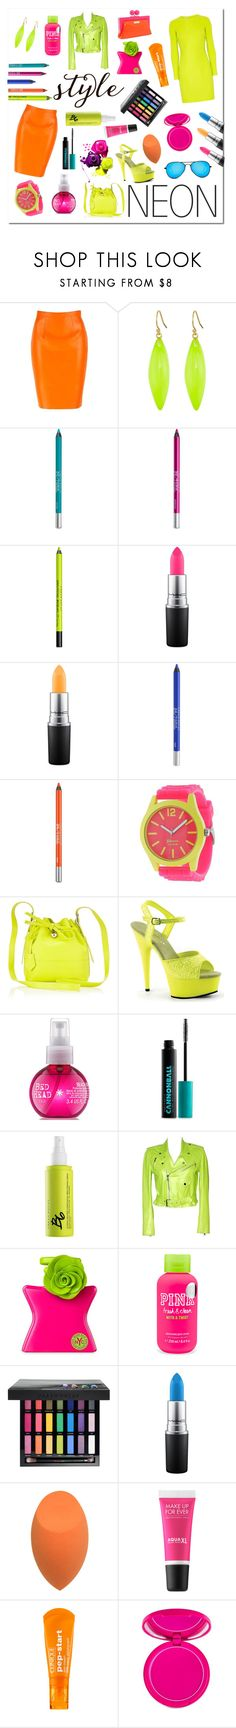 """Neon Fashion"" by pr267 ❤ liked on Polyvore featuring Giuseppe Zanotti, Alexis Bittar, Urban Decay, MAC Cosmetics, Geneva, Aspinal of London, Pleaser, Kate Spade, Ralph Lauren and Bond No. 9"